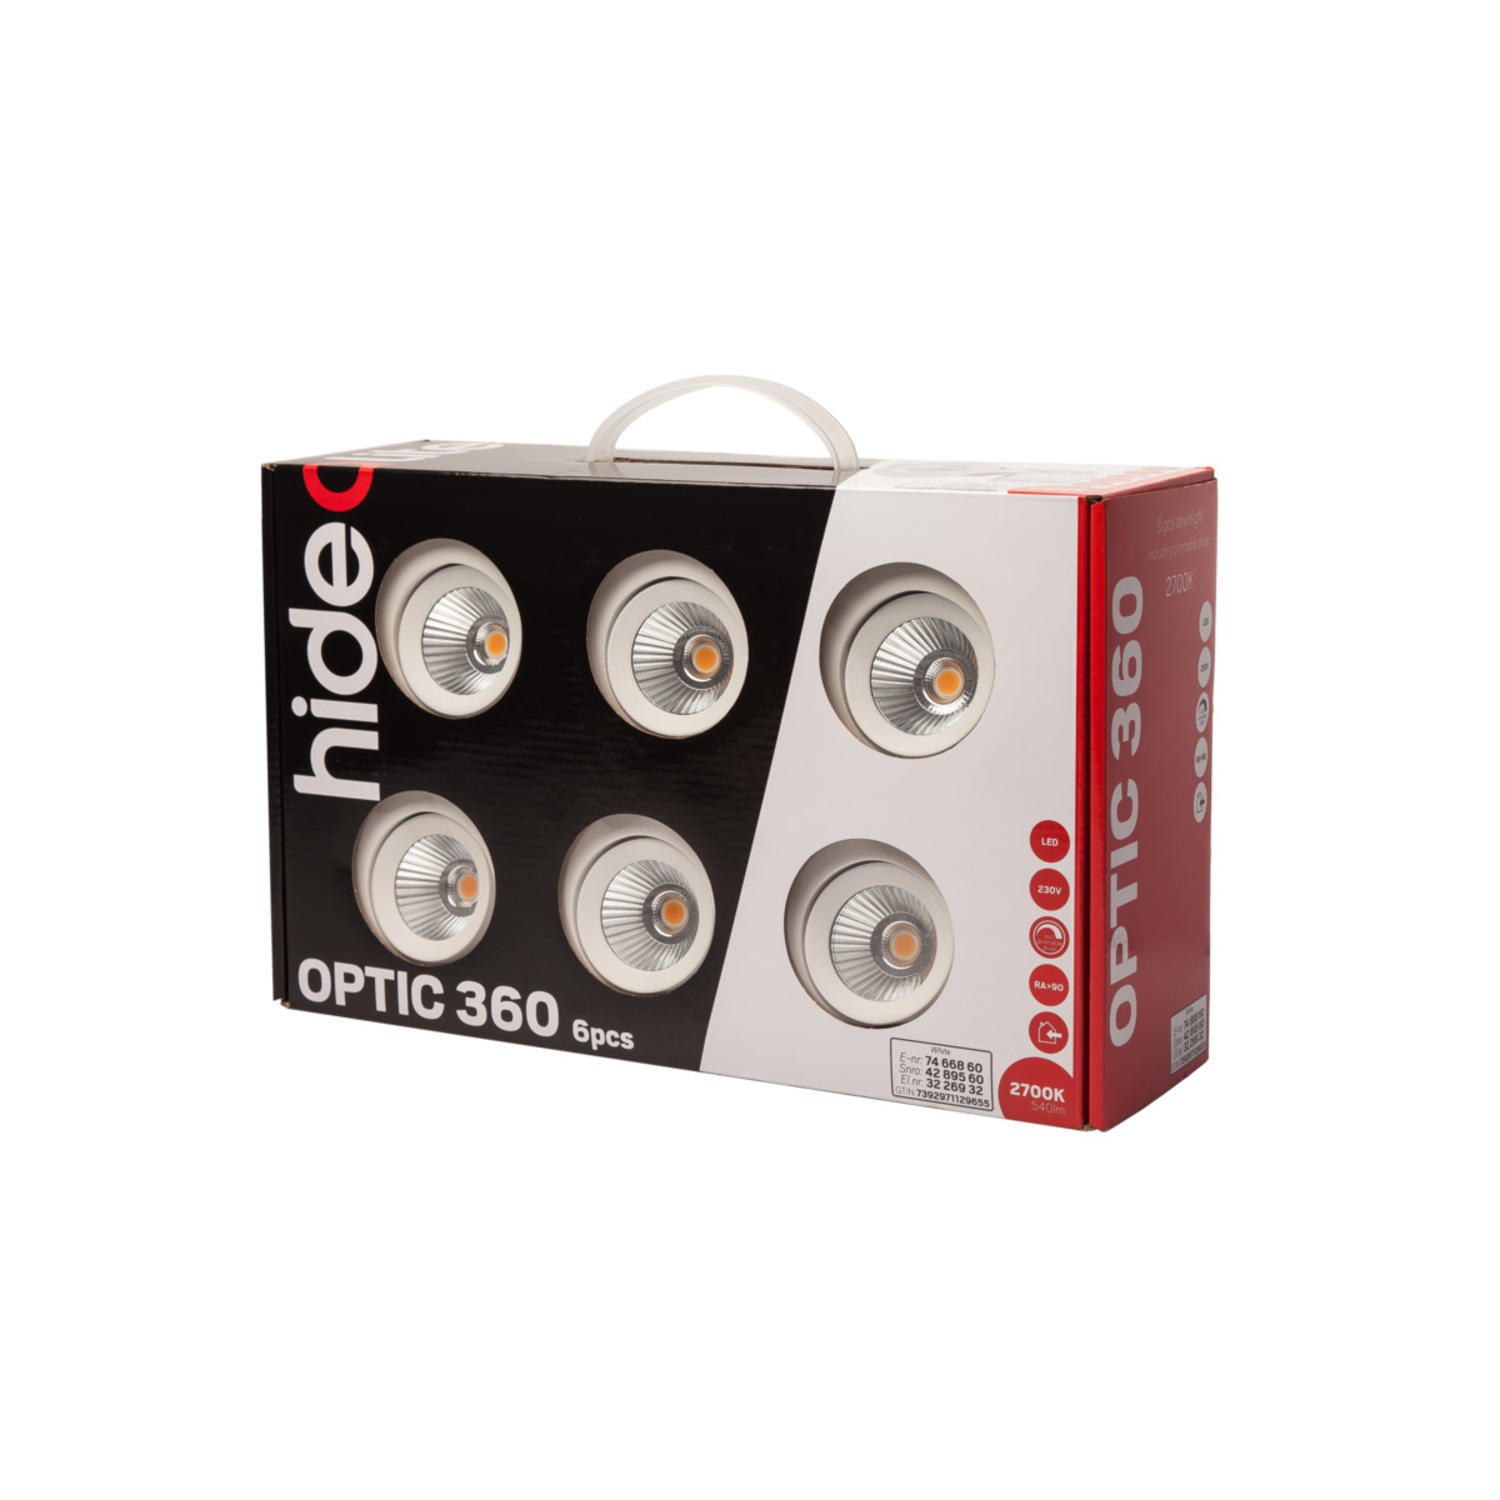 Optic 360 6-pack Vit 3000K